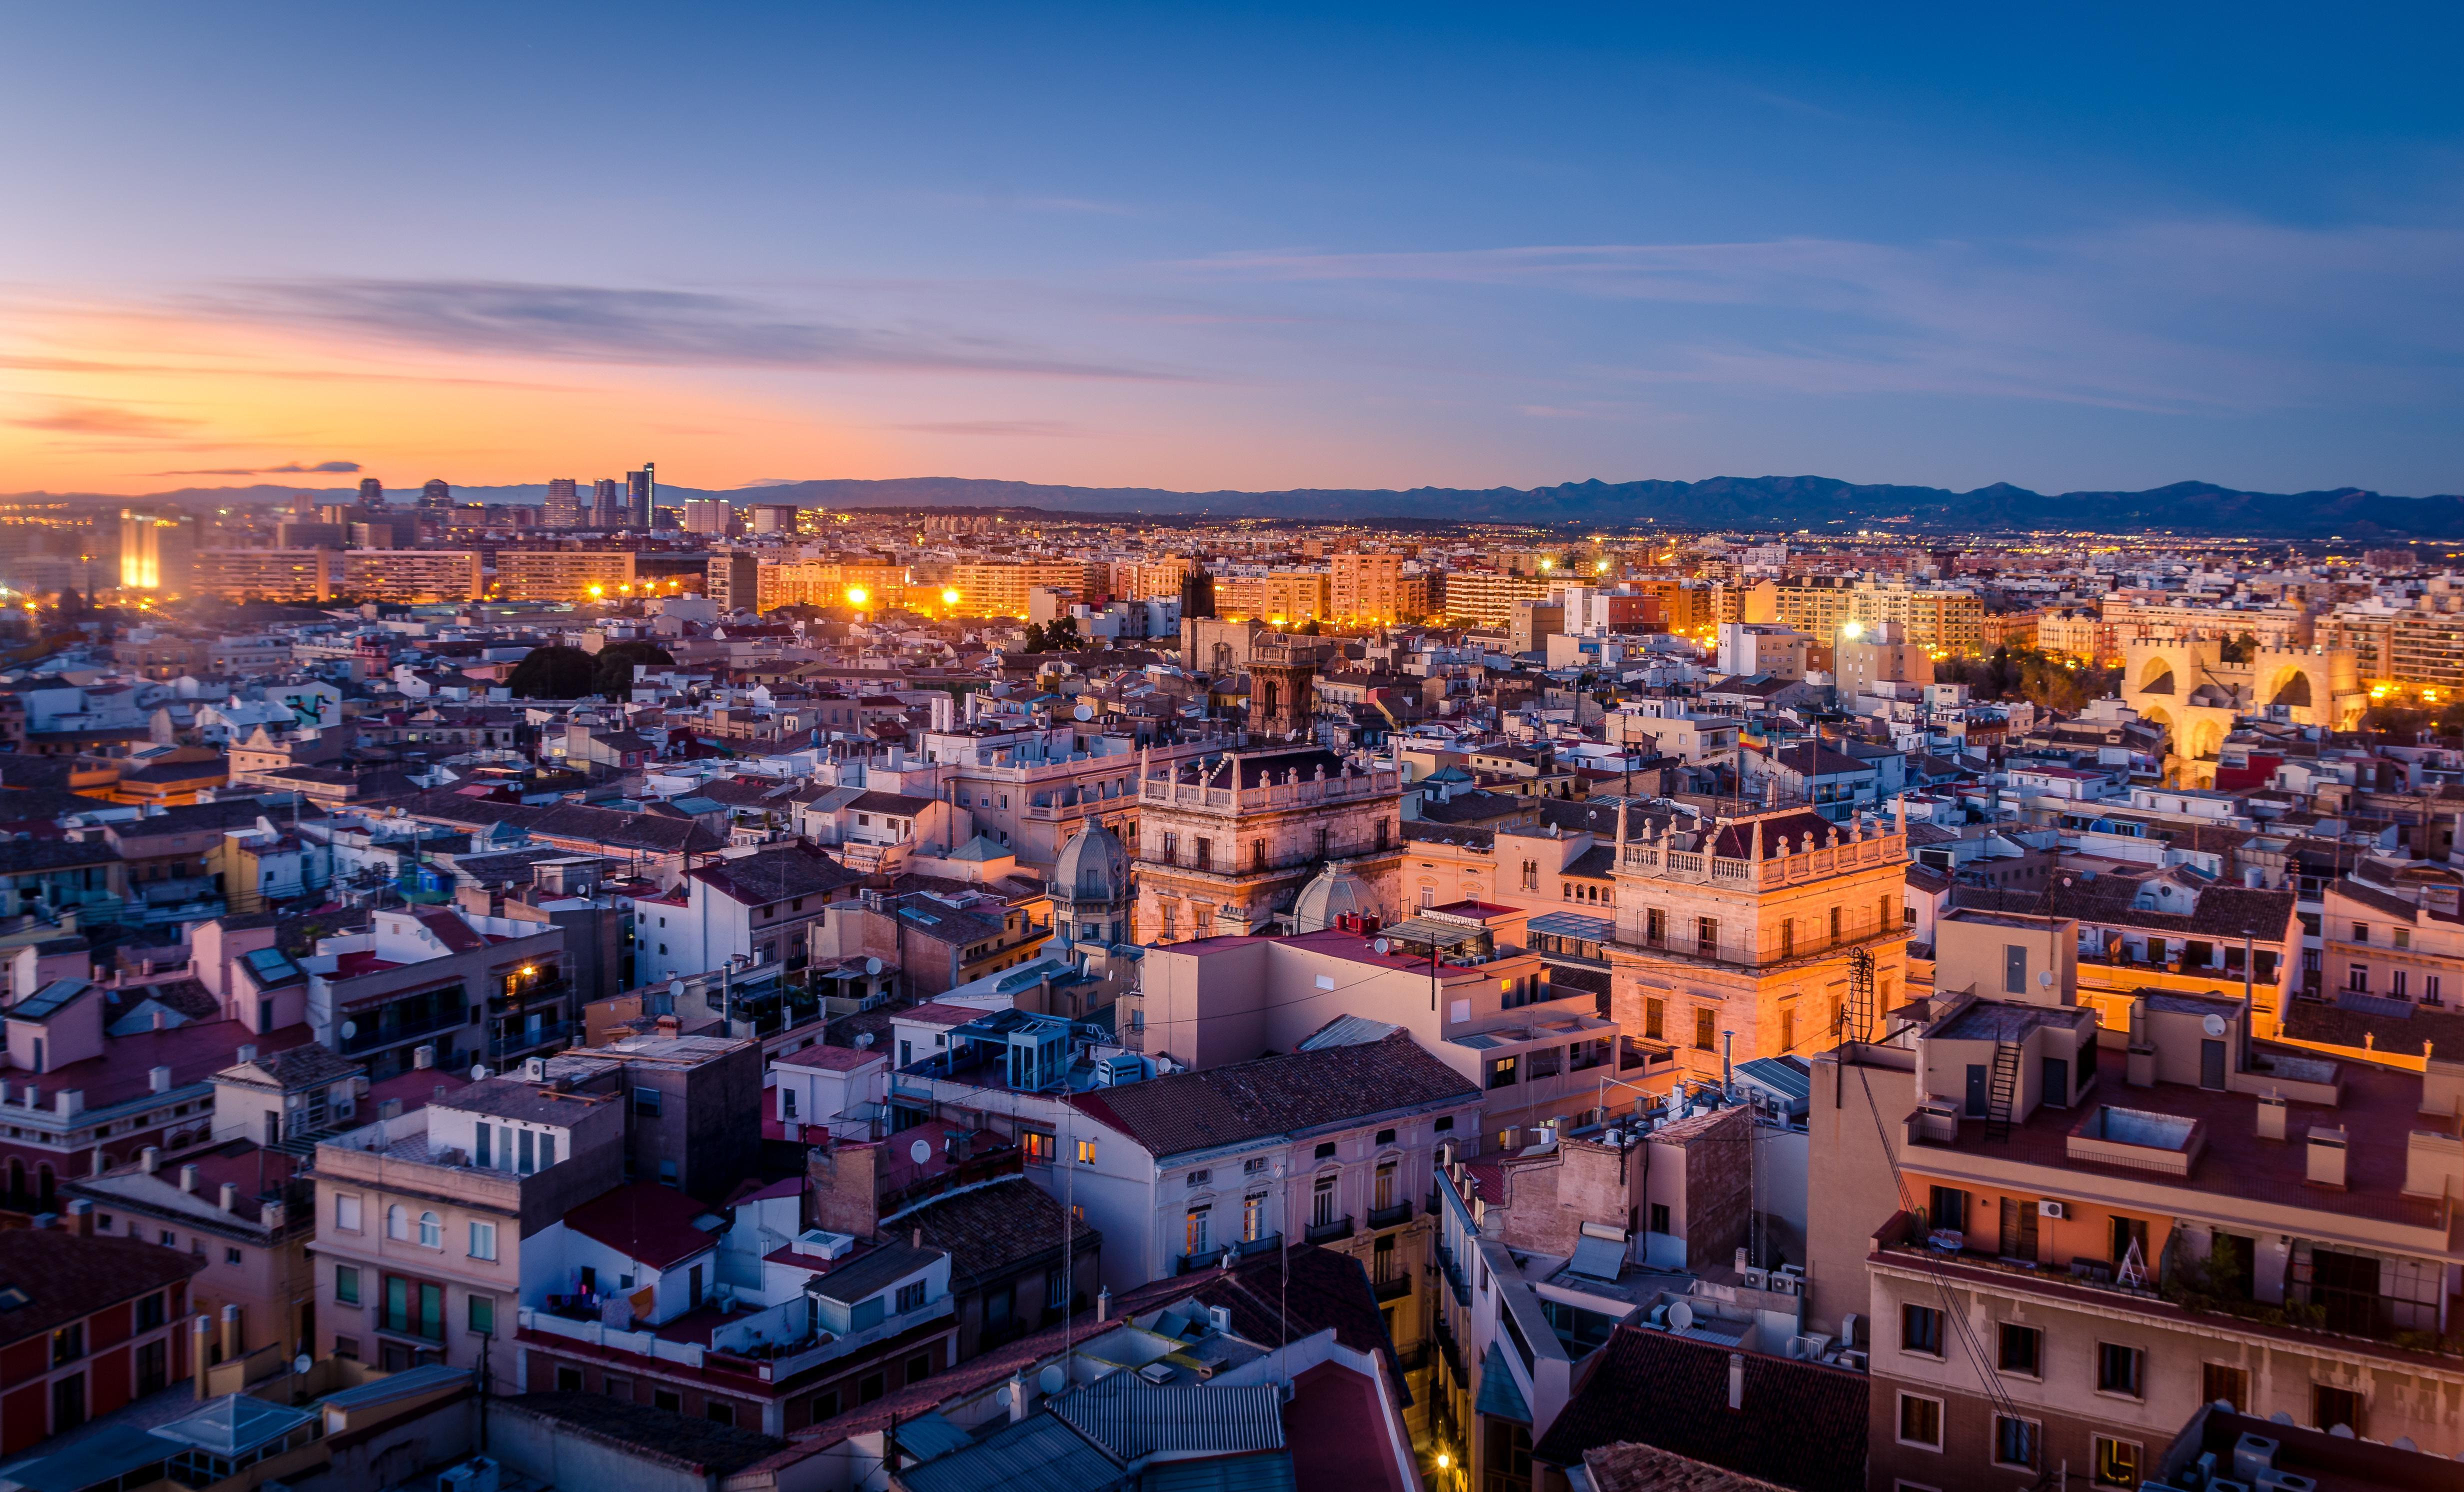 How to Spend 2 Days in Valencia